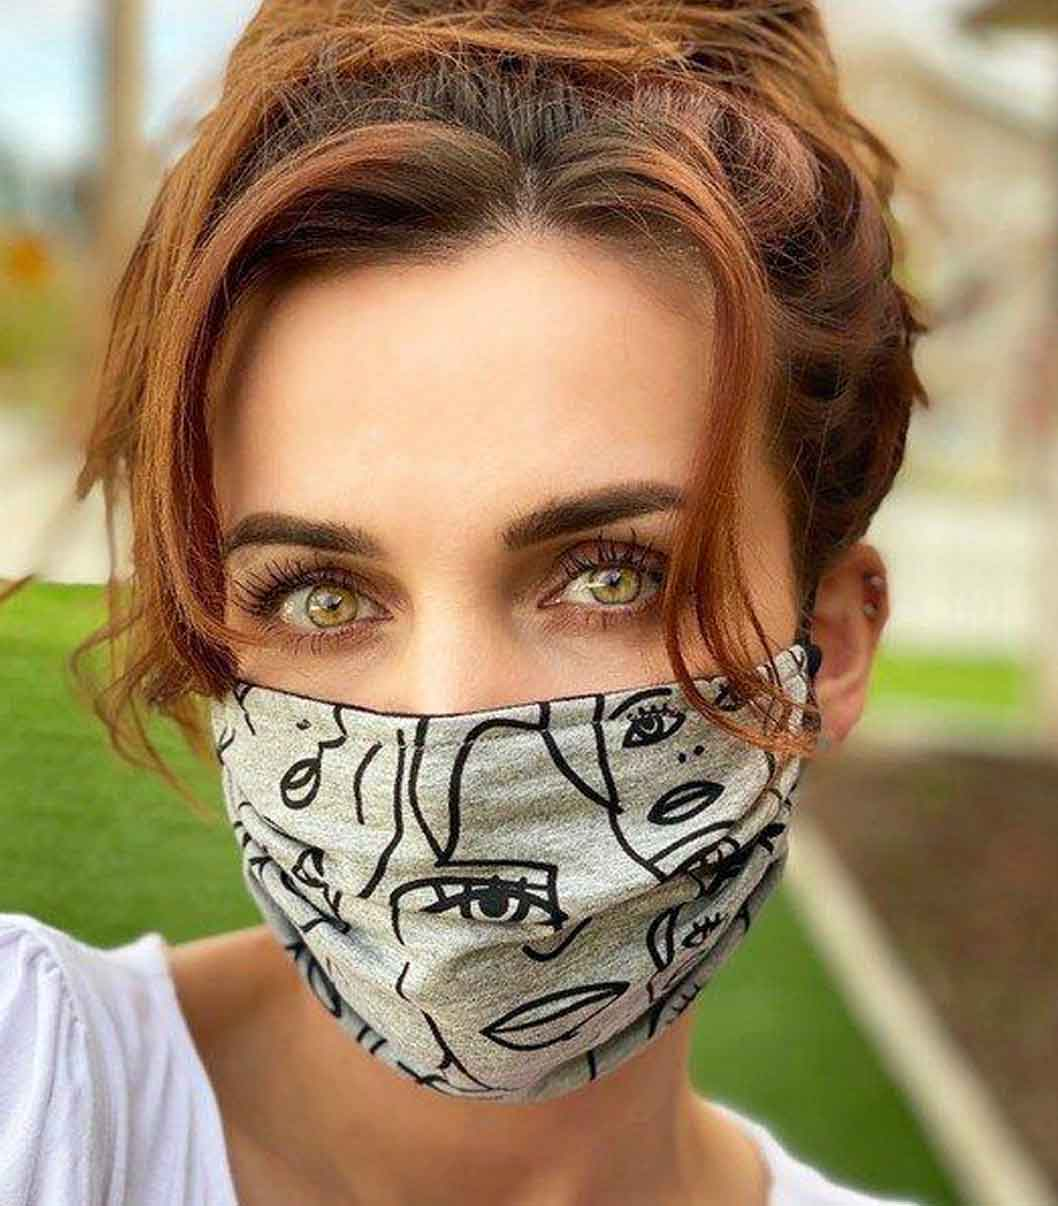 HAILEY SOLAR SUSTAINABLE FACE MASK LA good fashion guide ECOLOOKBOOK